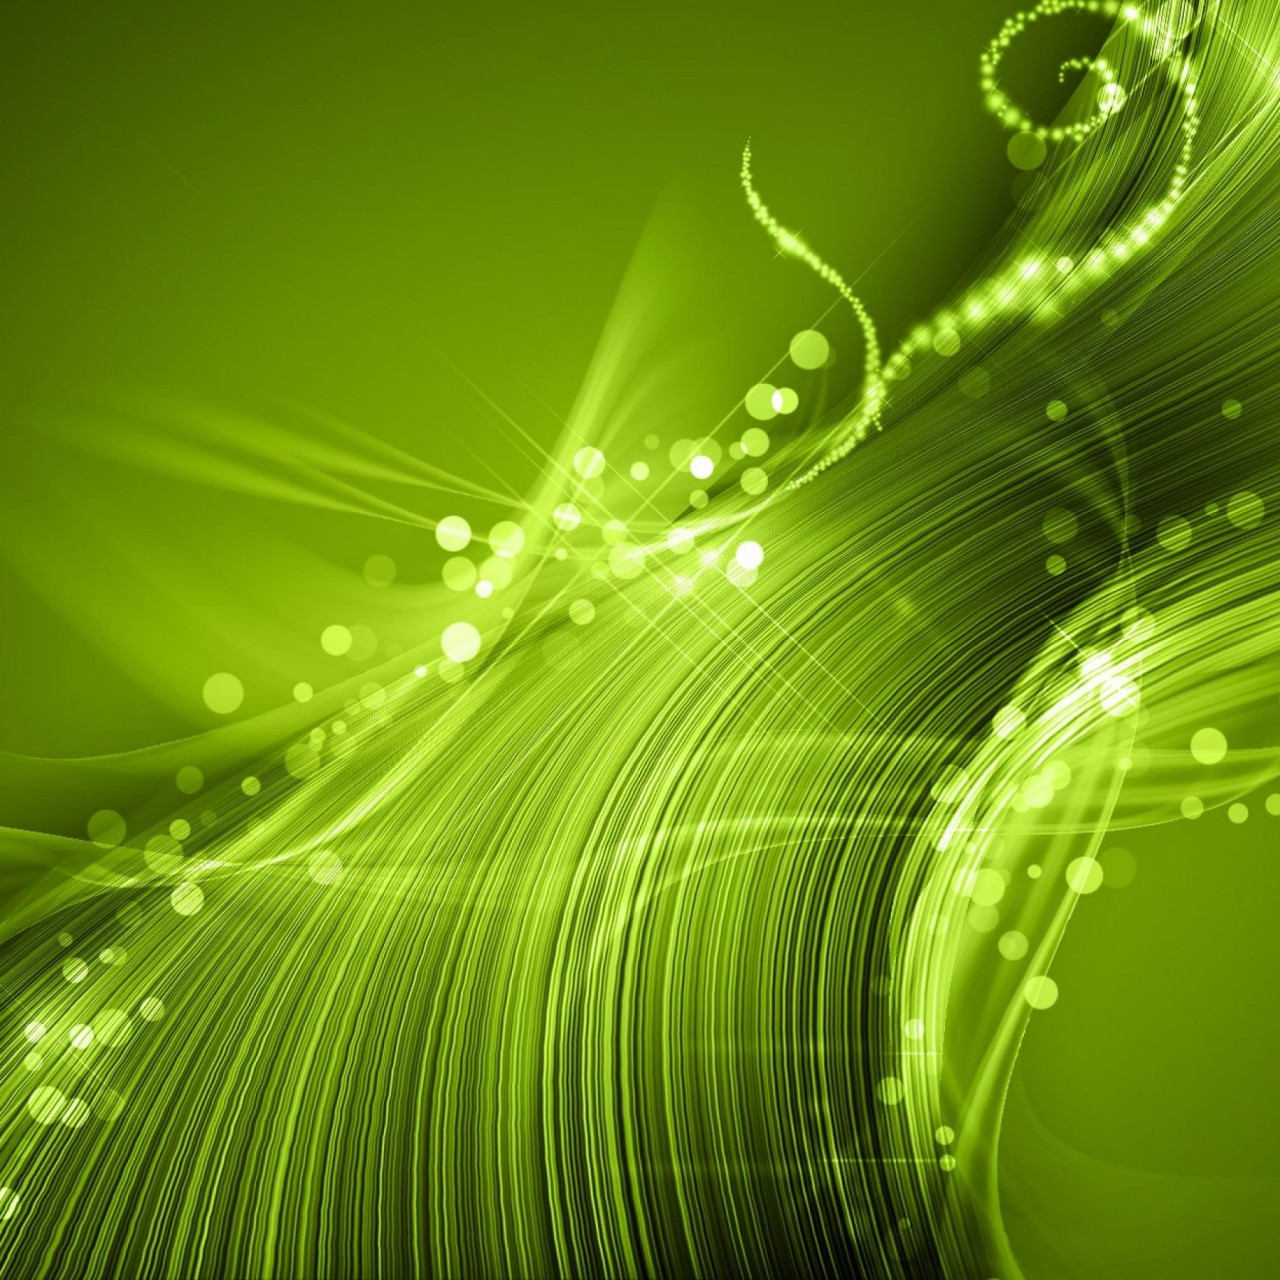 Vita Wallpapers: Ps Vita Light Green Abstract Wallpaper #9571 Hd Wallpapers